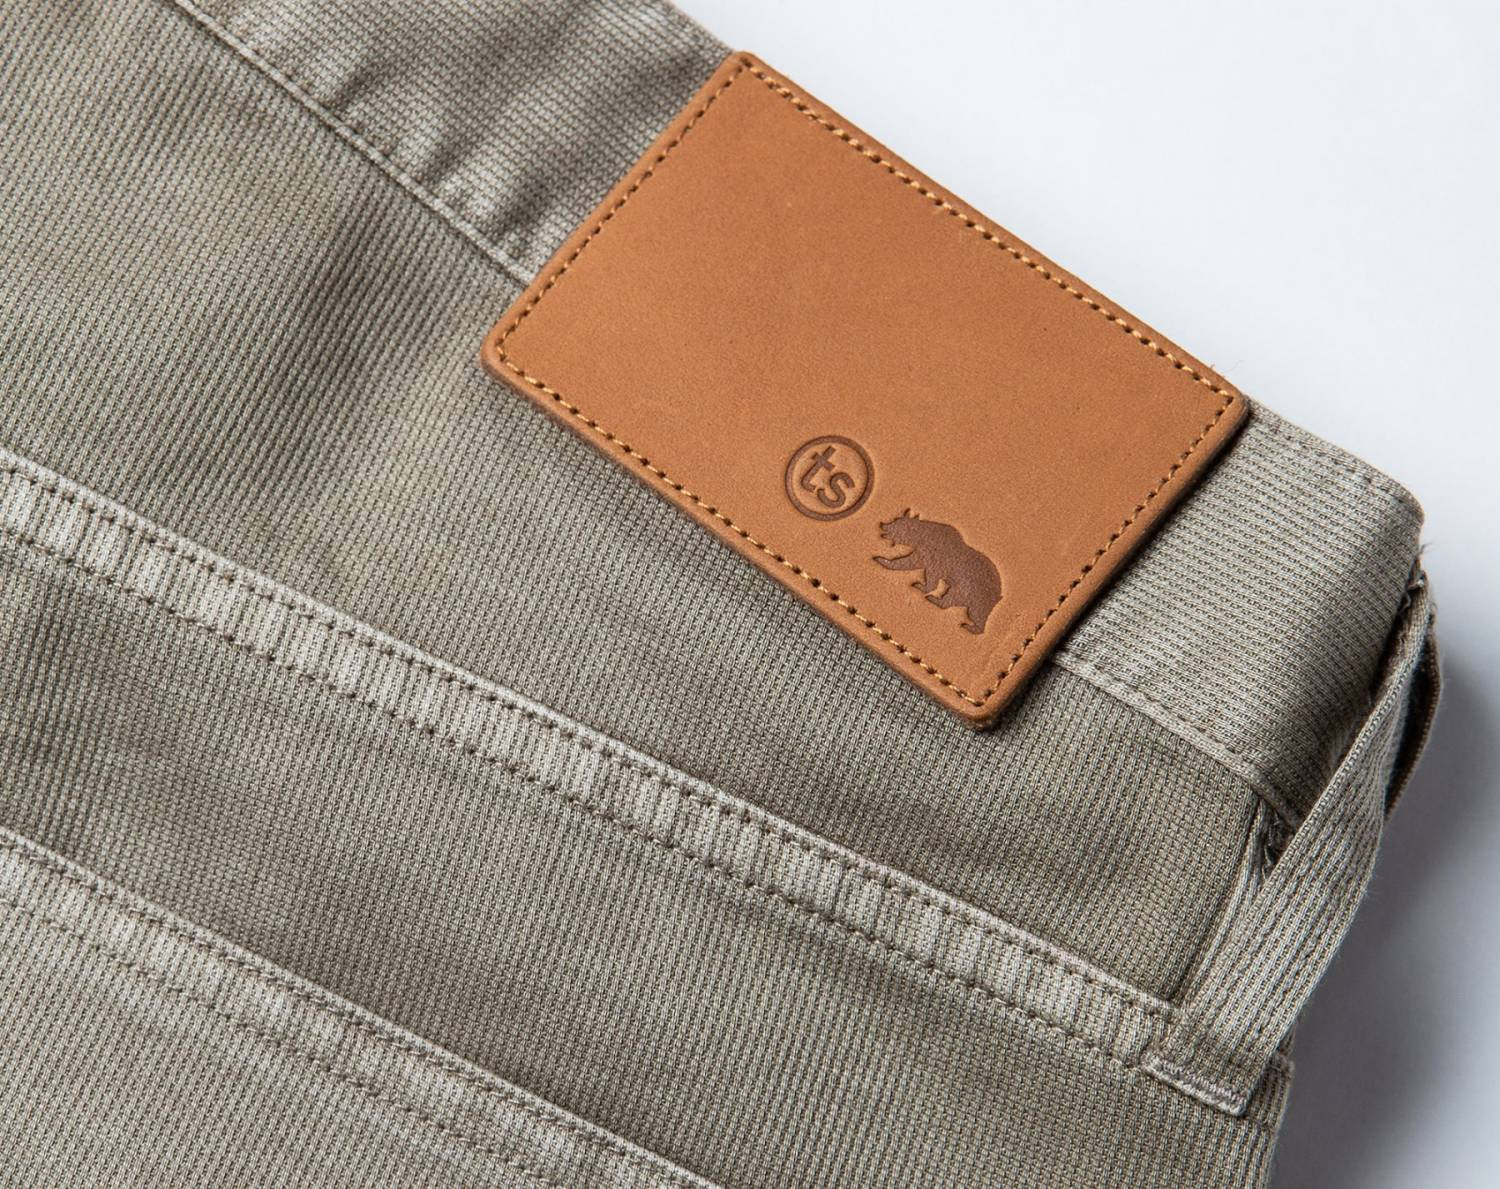 taylor stitch bedford cord all day pants